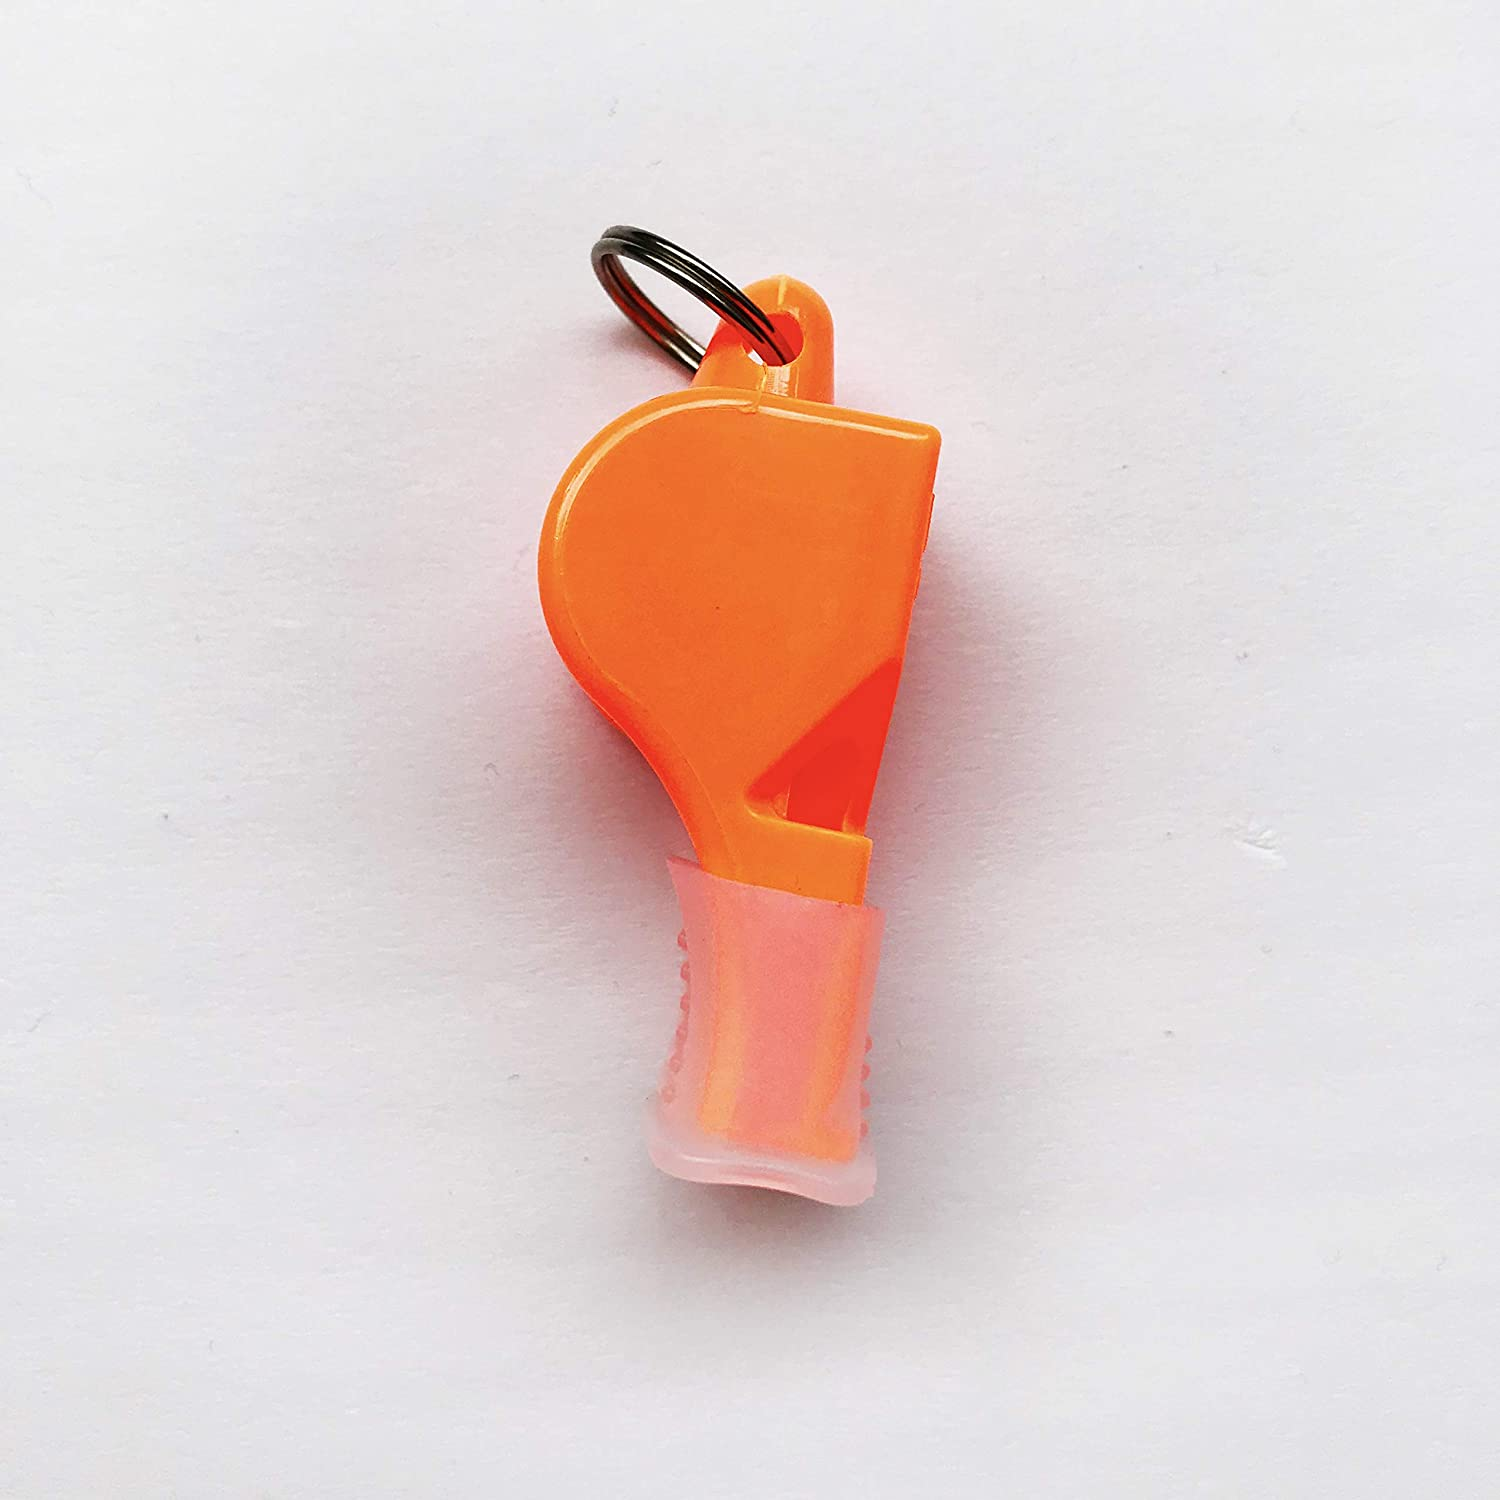 Paidiao 50pcs//Lot FOX40 Referee Classic Whistle Basketball Volleyball Football Tennis Dolphin Whistle Apito with Mouthguard Without Canada Logo